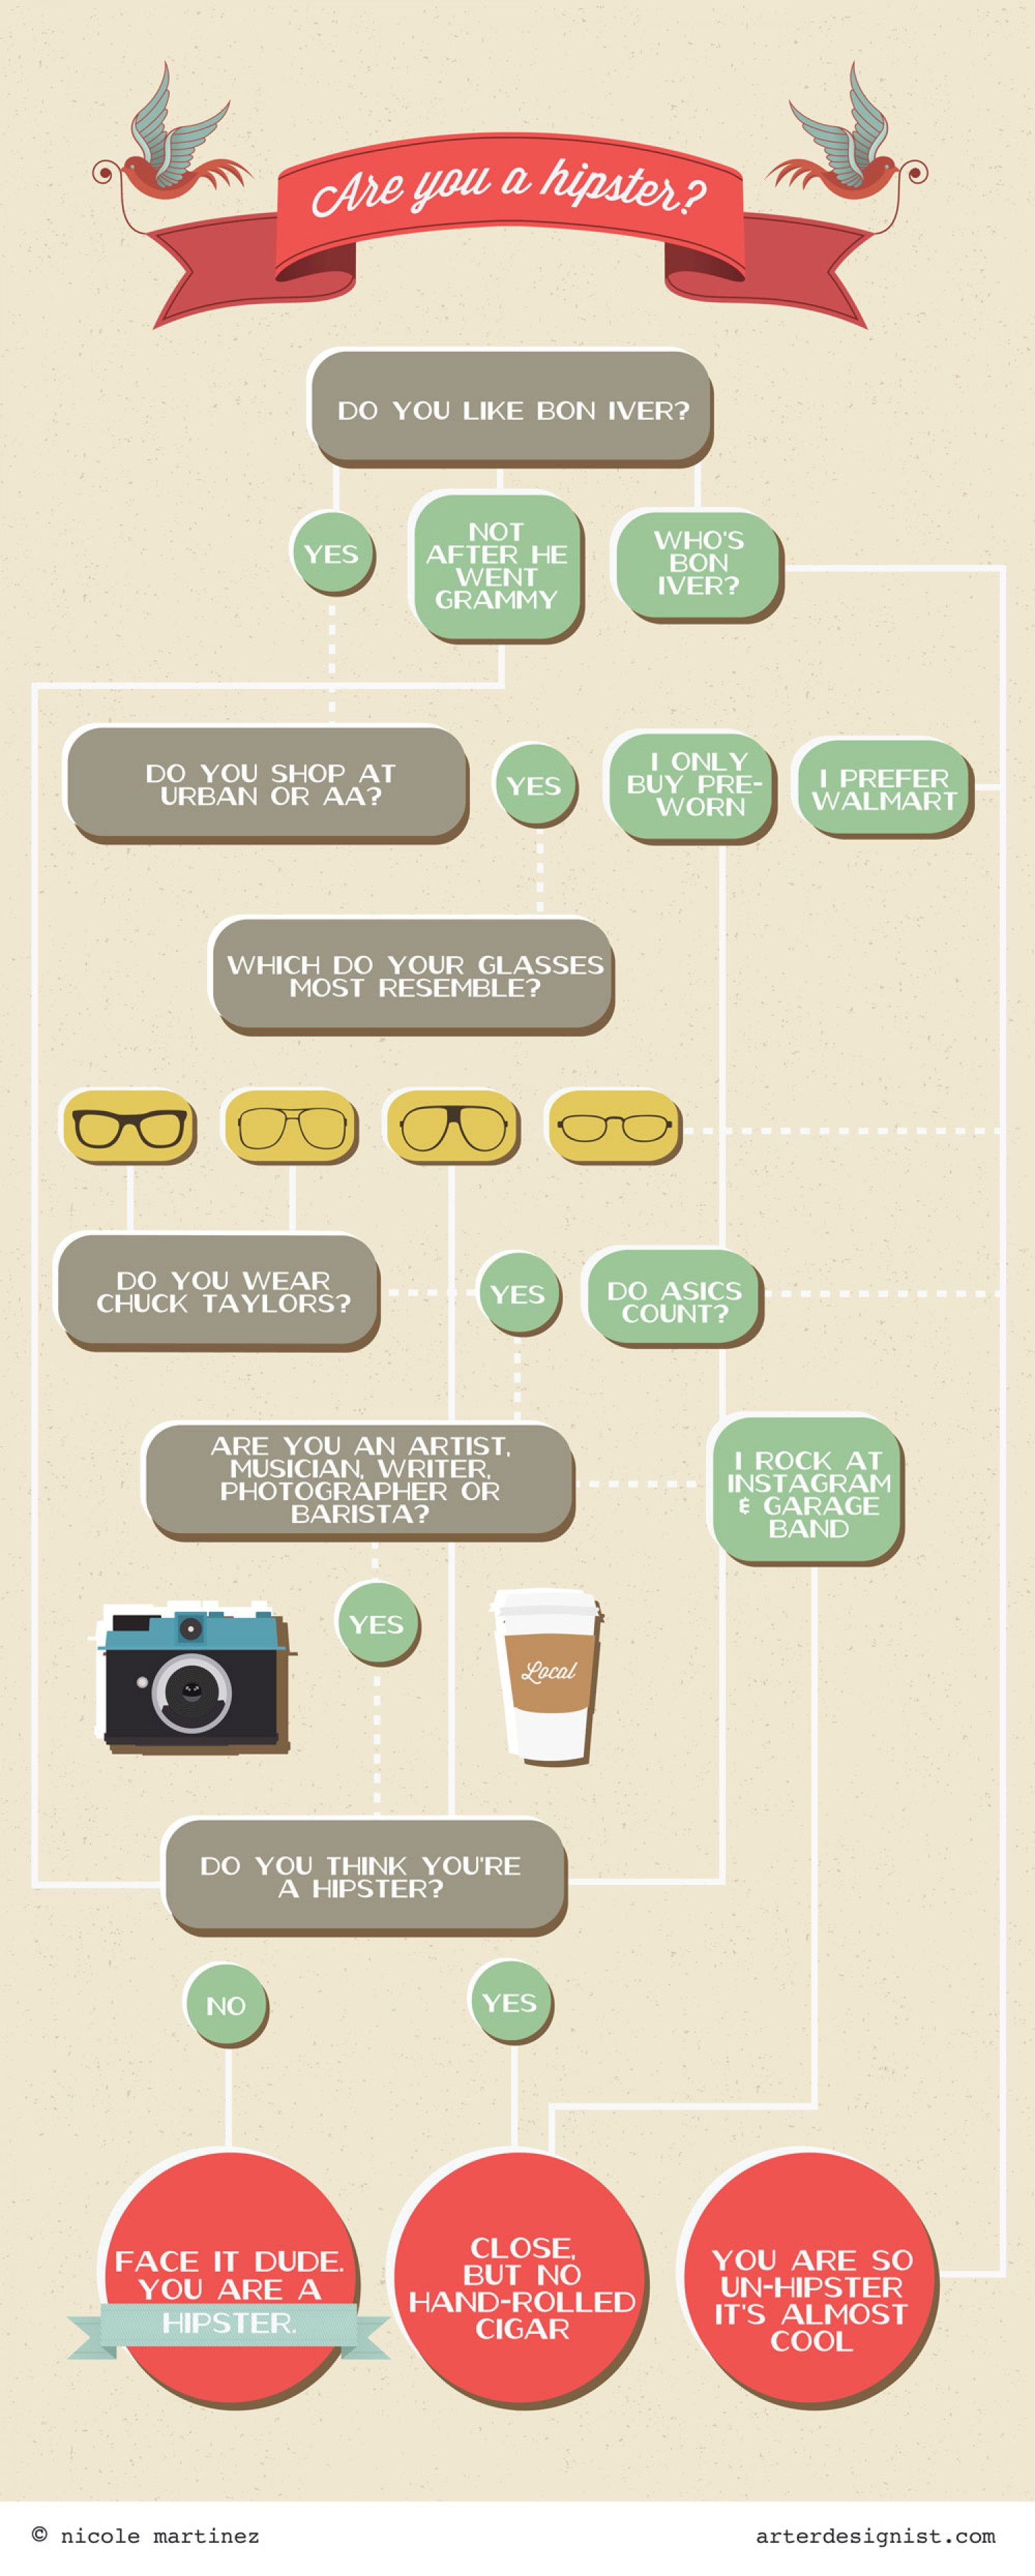 Are You a Hipster? Infographic